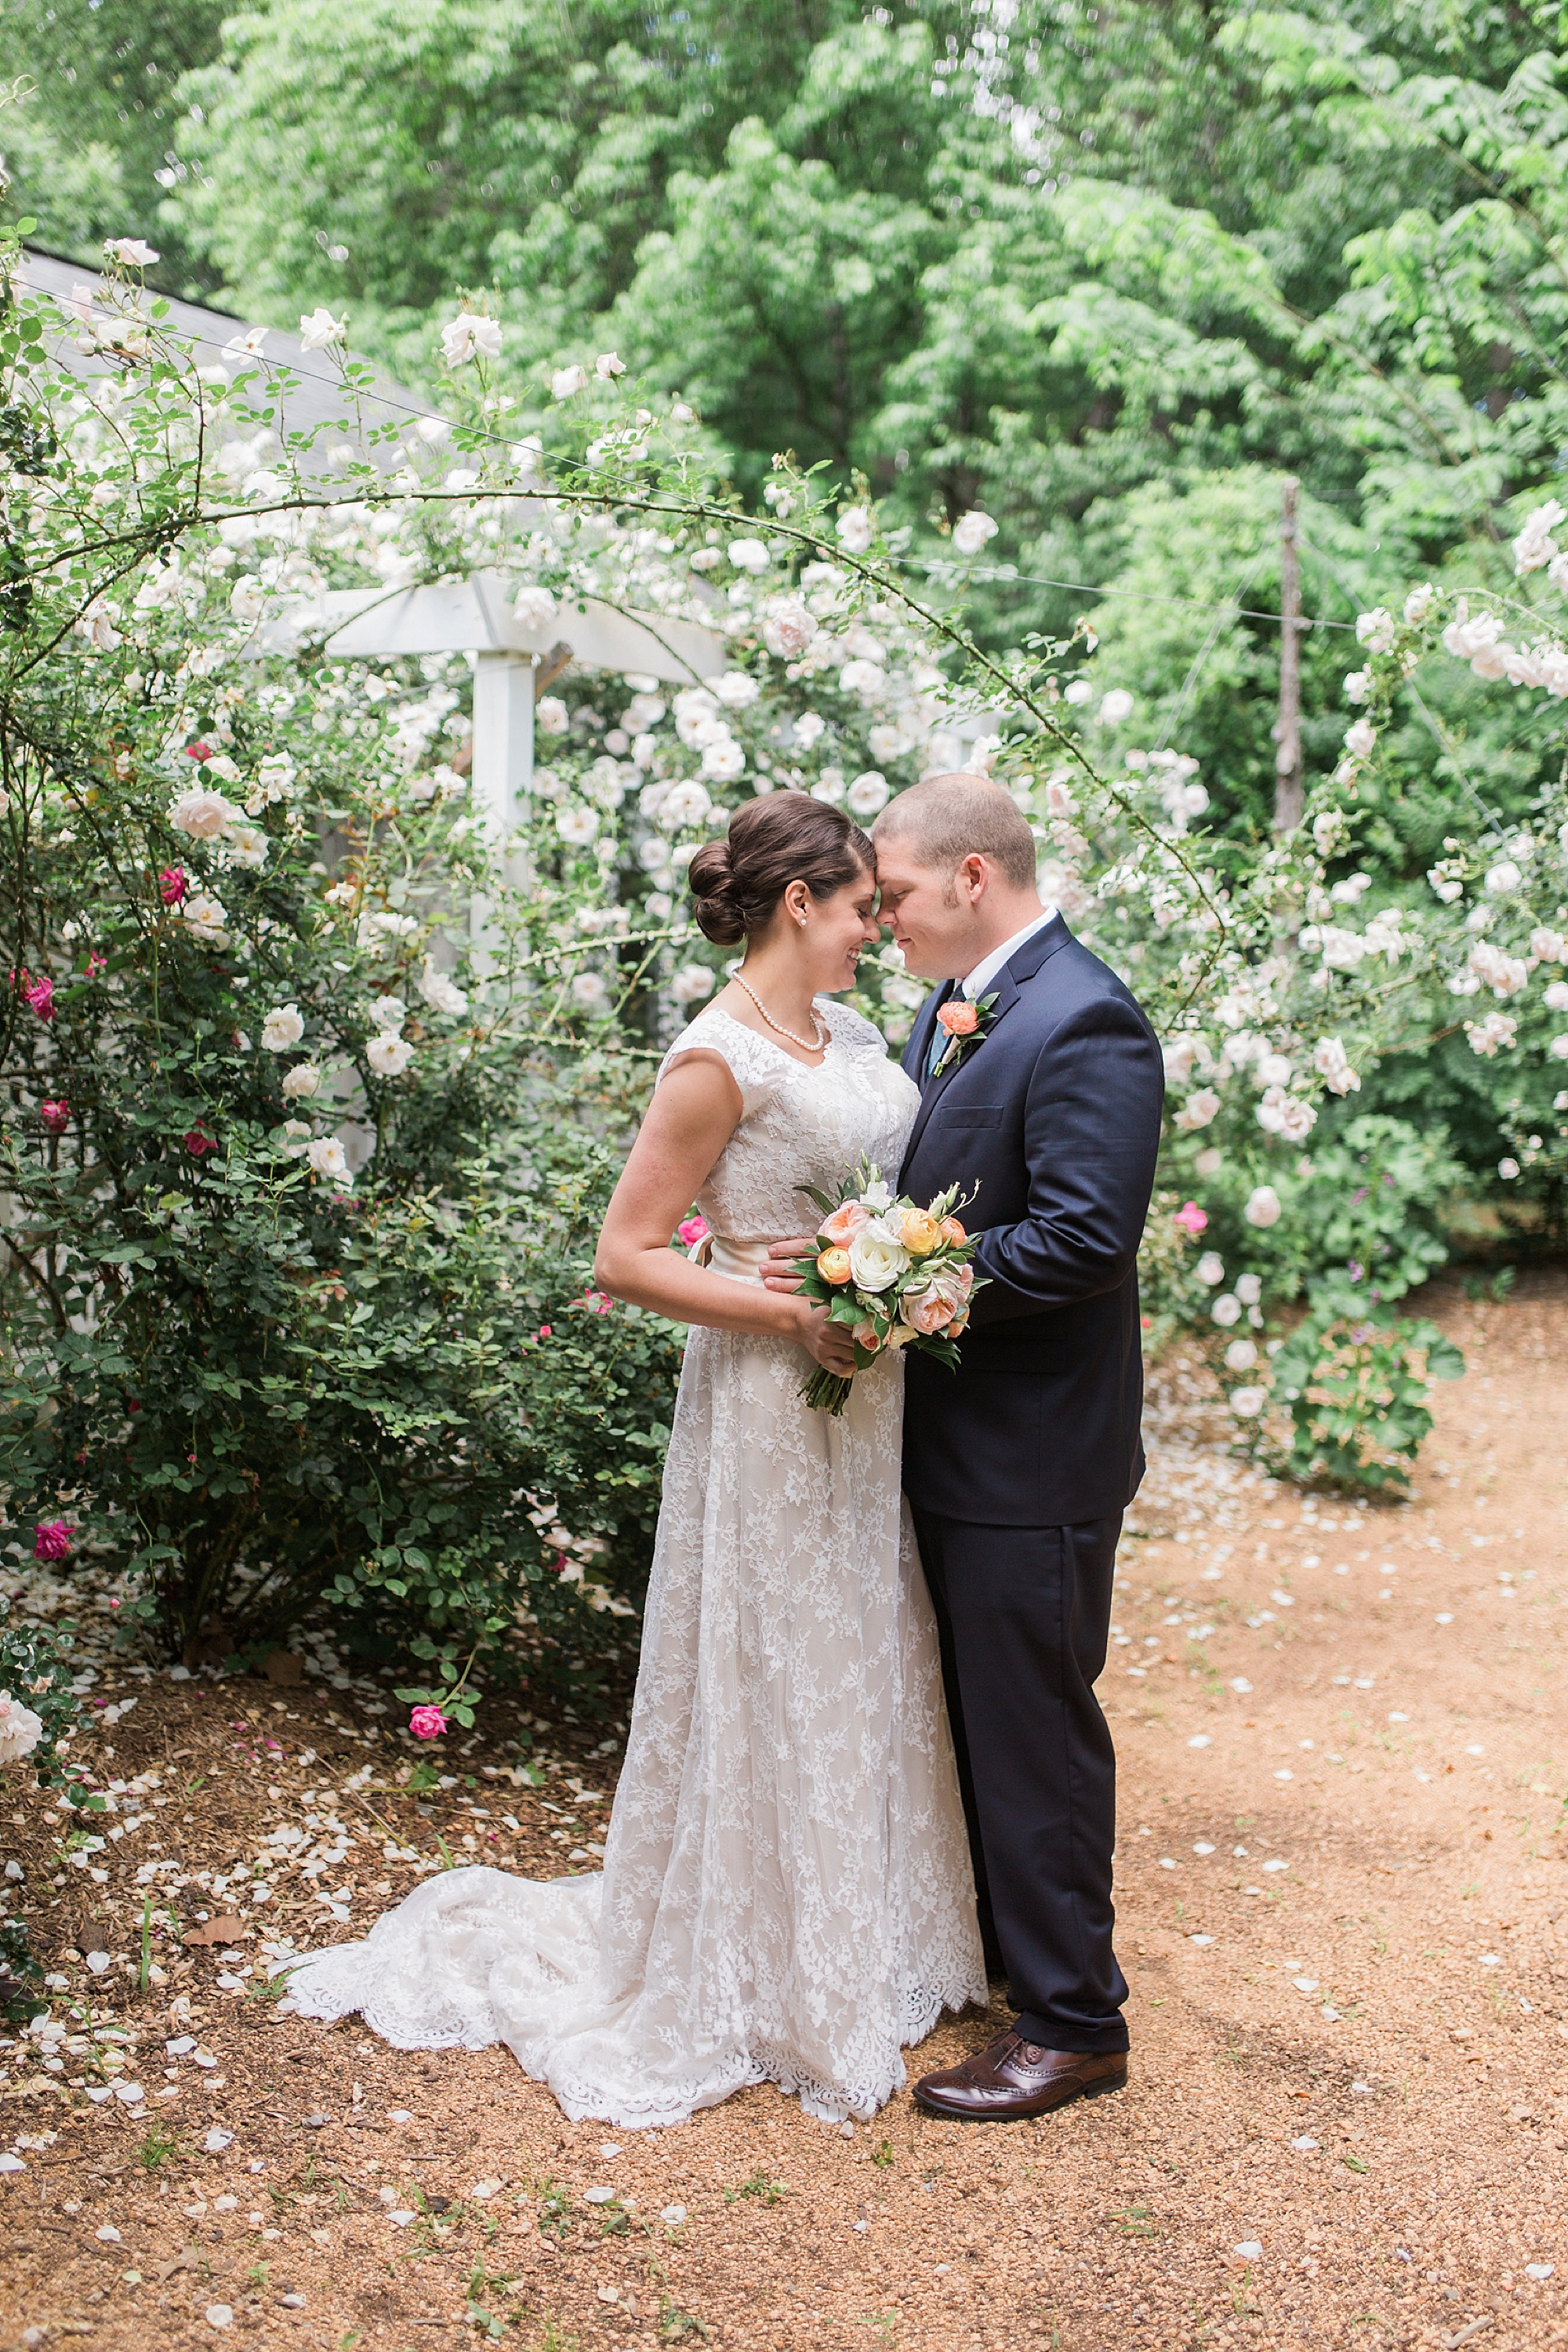 Romantic portraits with roses at Merry Hill